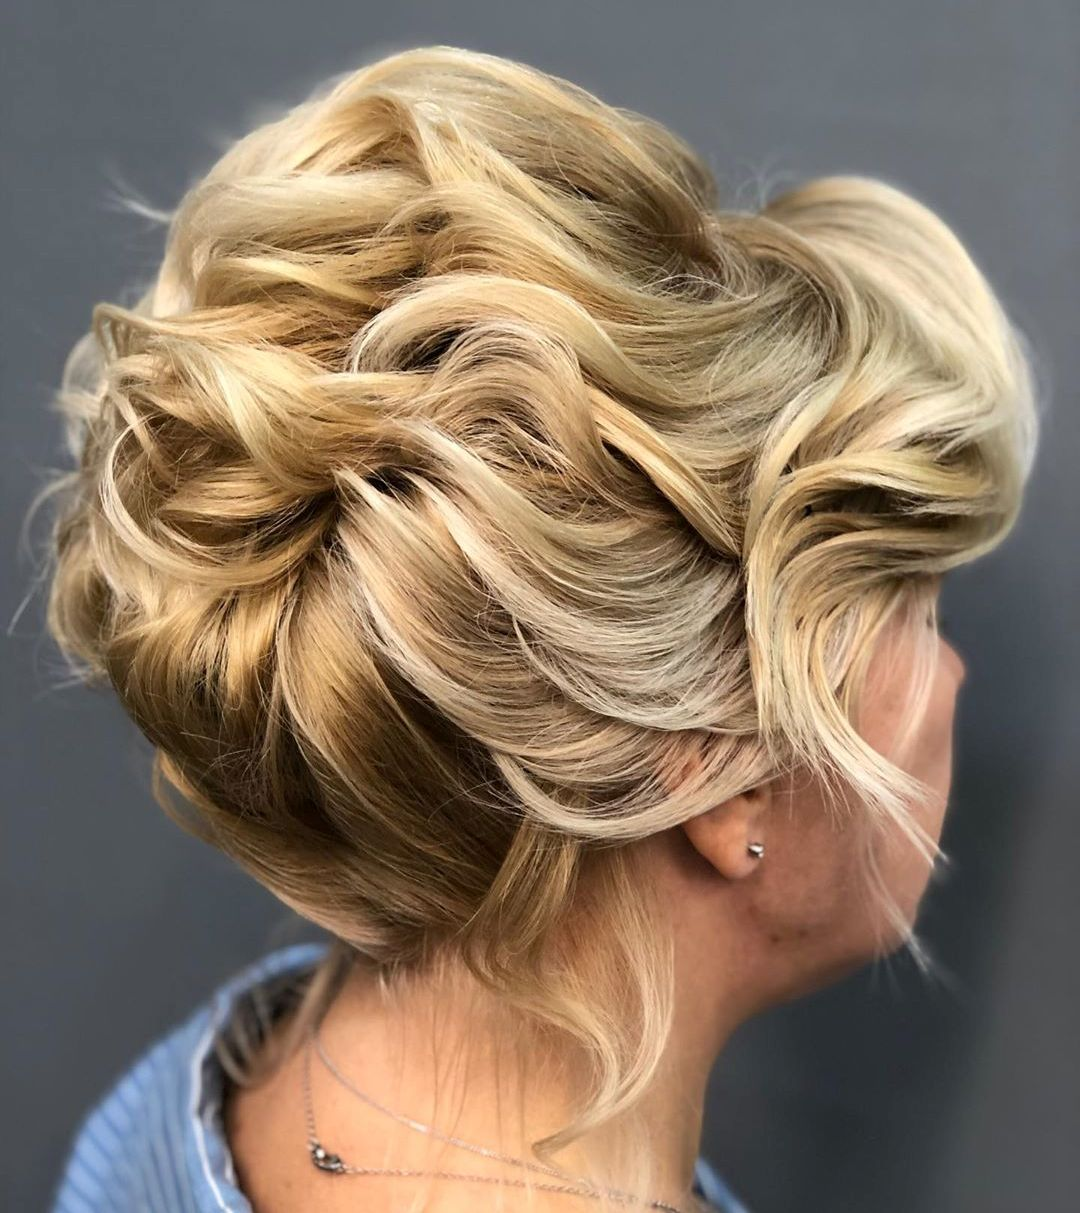 Messy Curly Updo for Women's Short Hair